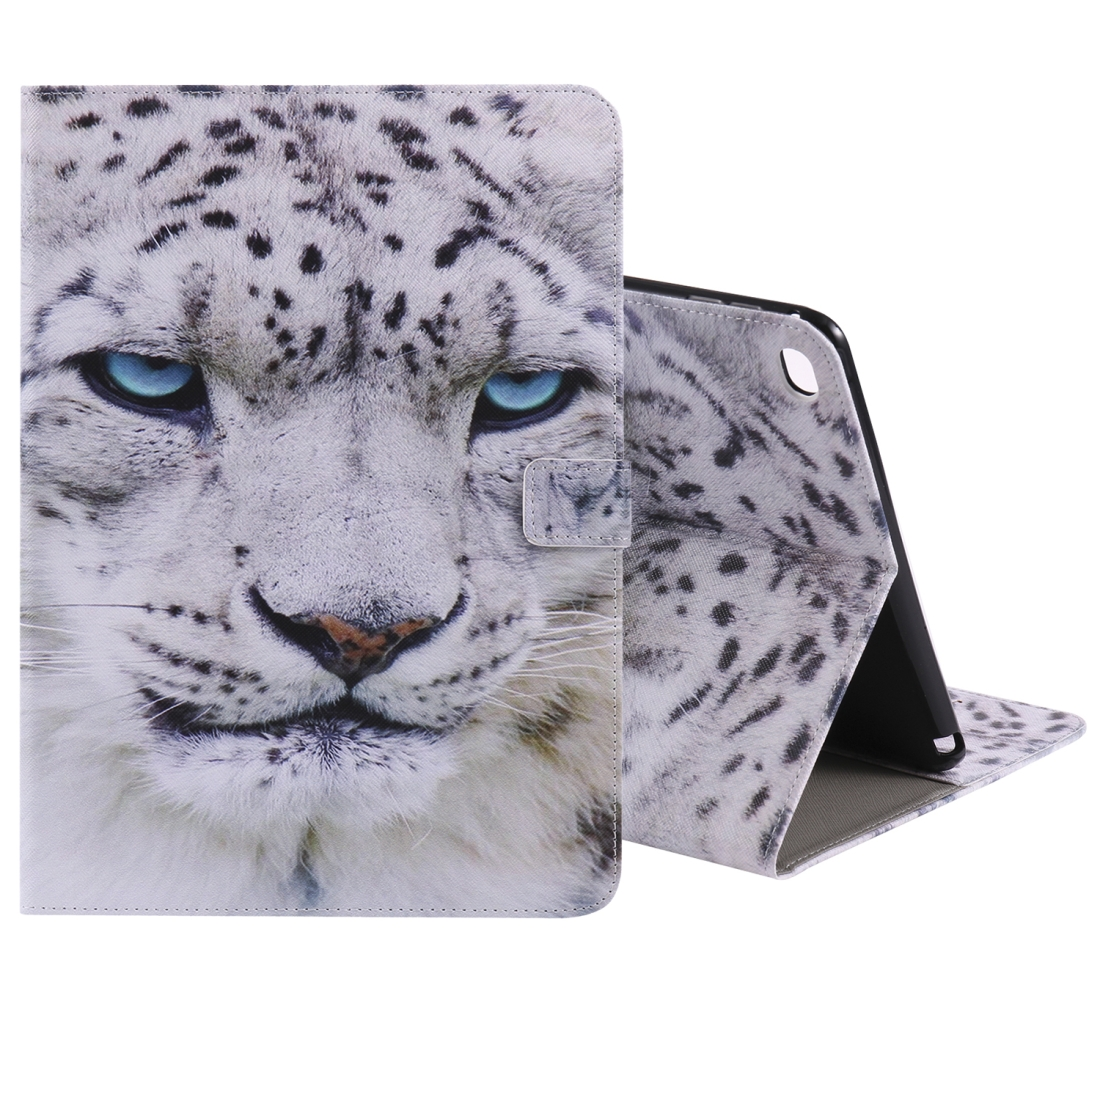 iPad 5th Generation Case Fits iPad 5 & 6, Leather With A Slim Profile & Auto Sleep (White Panther)